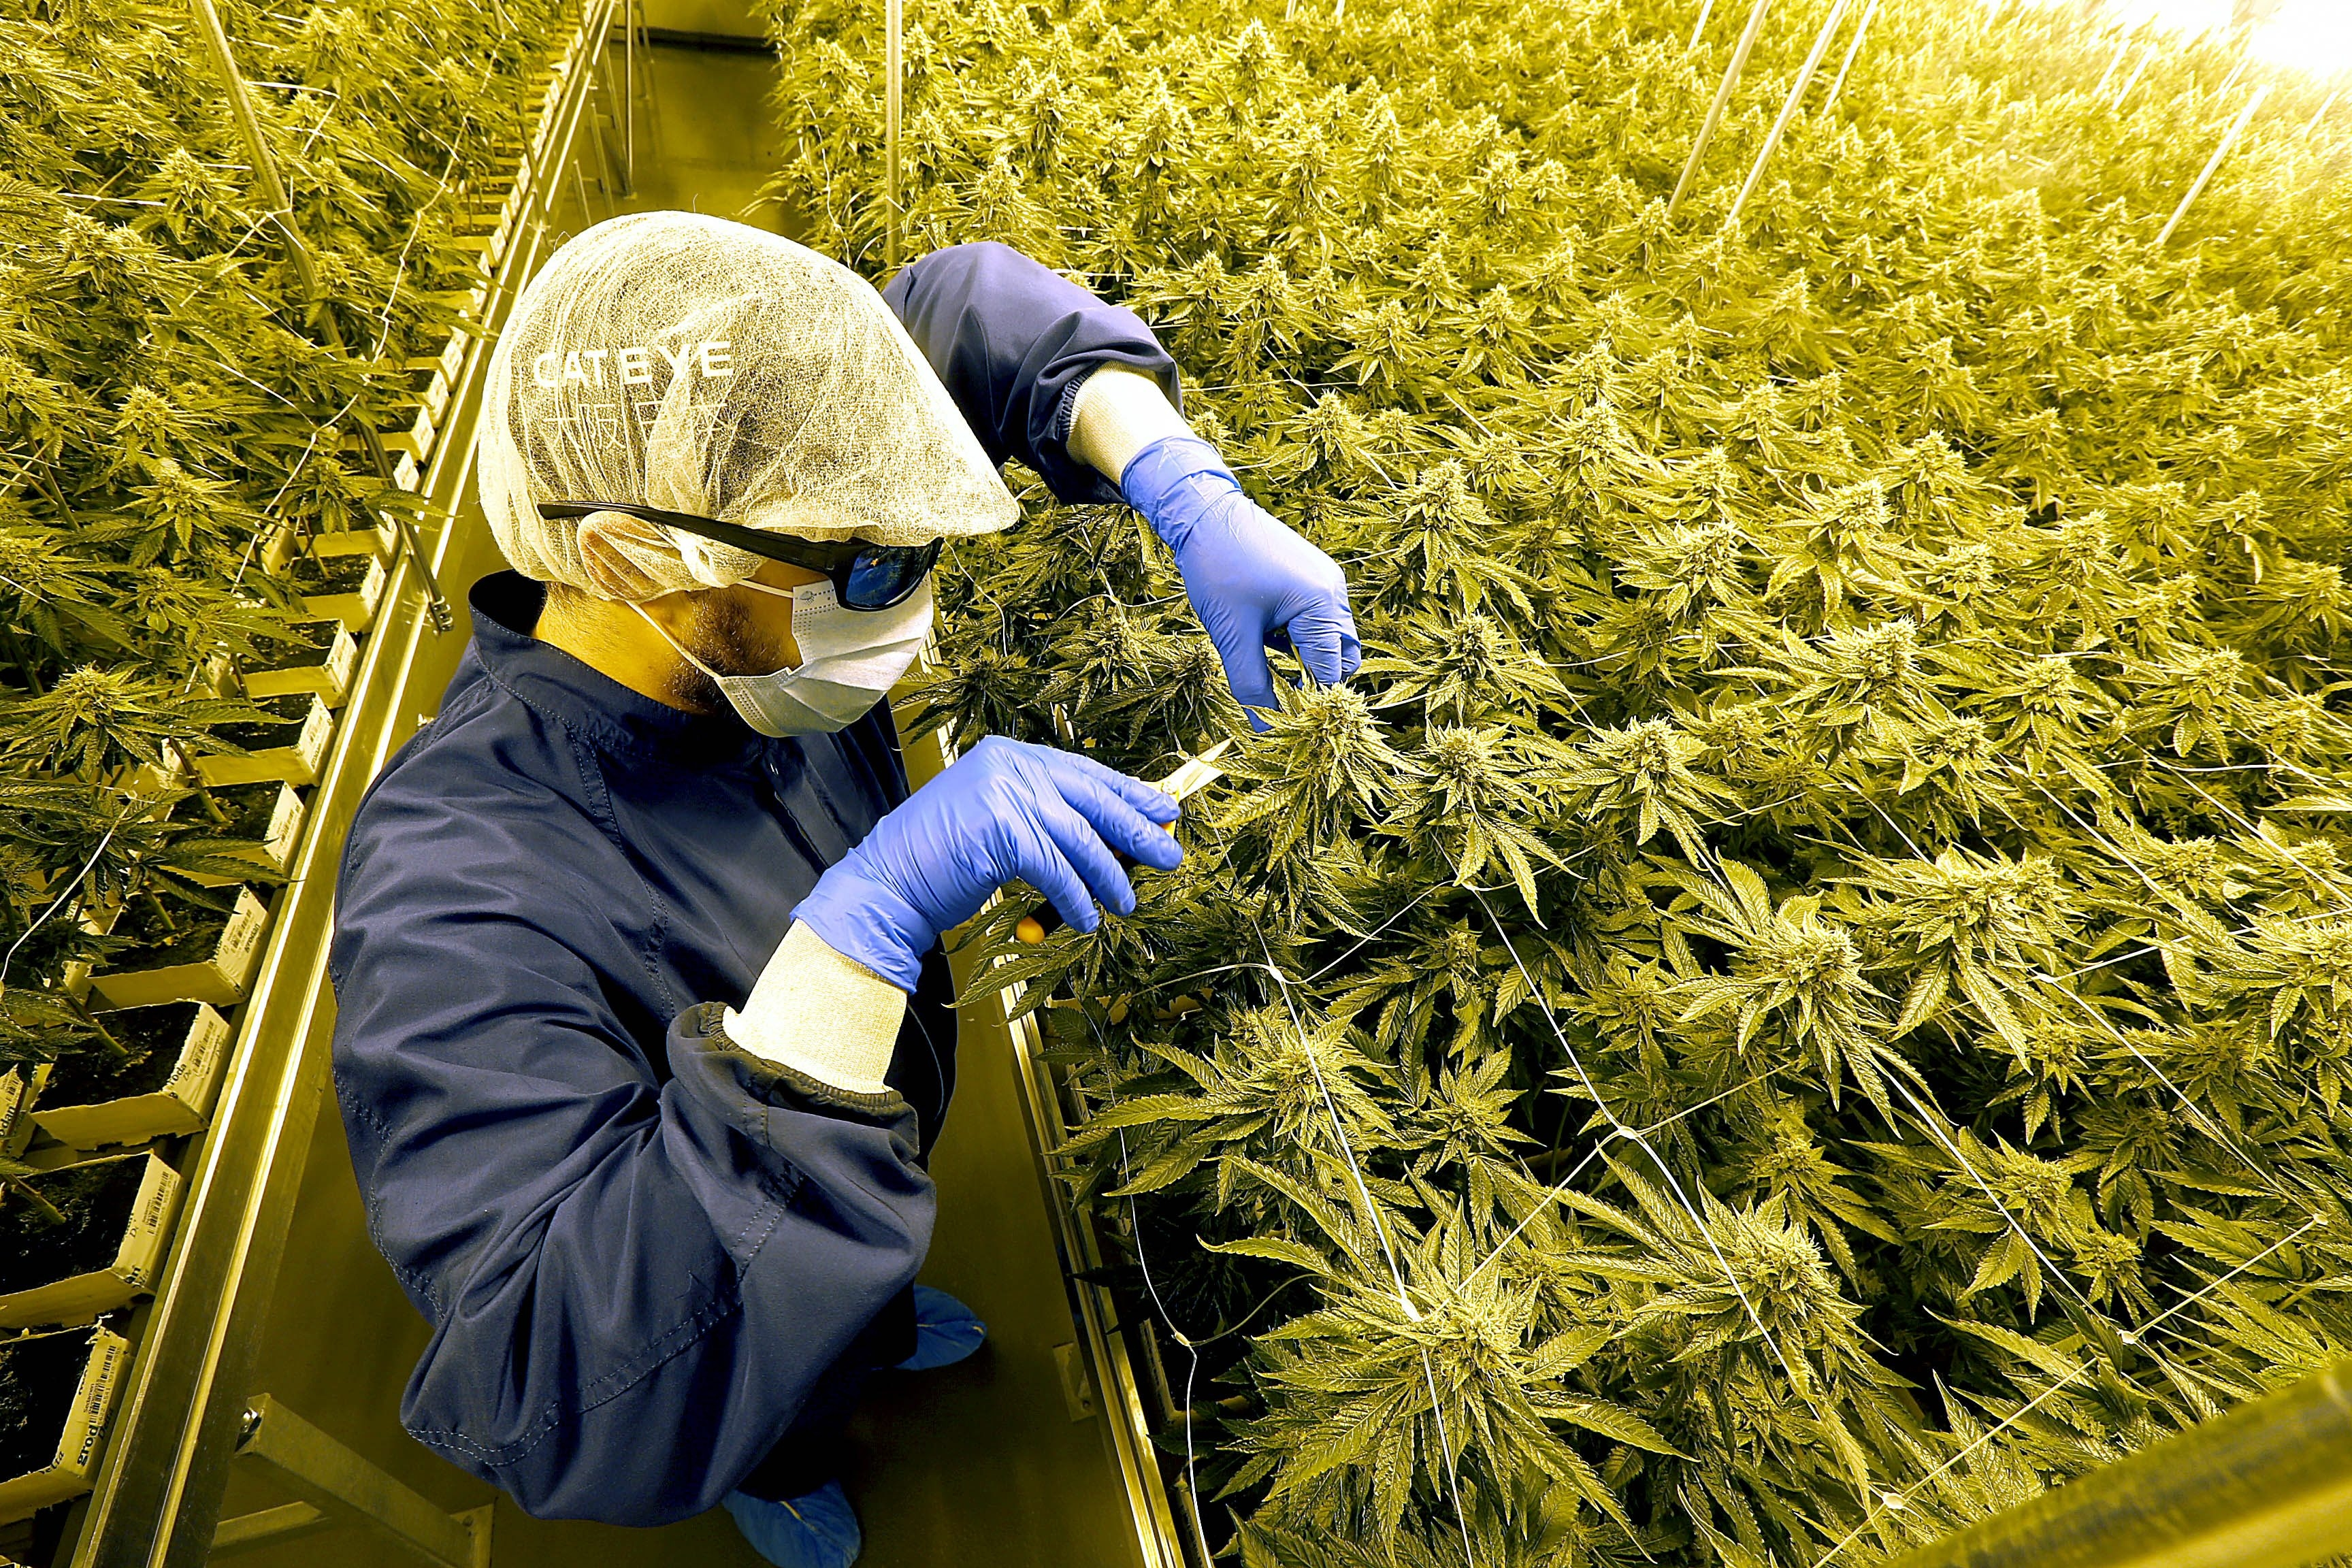 Cast in a golden glow and resembling mountain vistas in the high-peaks region of the Adirondacks, a fresh crop of marijuana reaches for the light in a growing room outfitted to near perfect conditions  at the Med Releaf Corporation's medical marijuana production and distribution facility in Markham, Ontario, Canada on Tuesday, June 16, 2015.  Worker Bart Zdanowicz, wearing protective UV filtering glasses to protect his exposure to the artificial sunlight, monitors and prunes the hearty plants. (Robert Kirkham/Buffalo News)